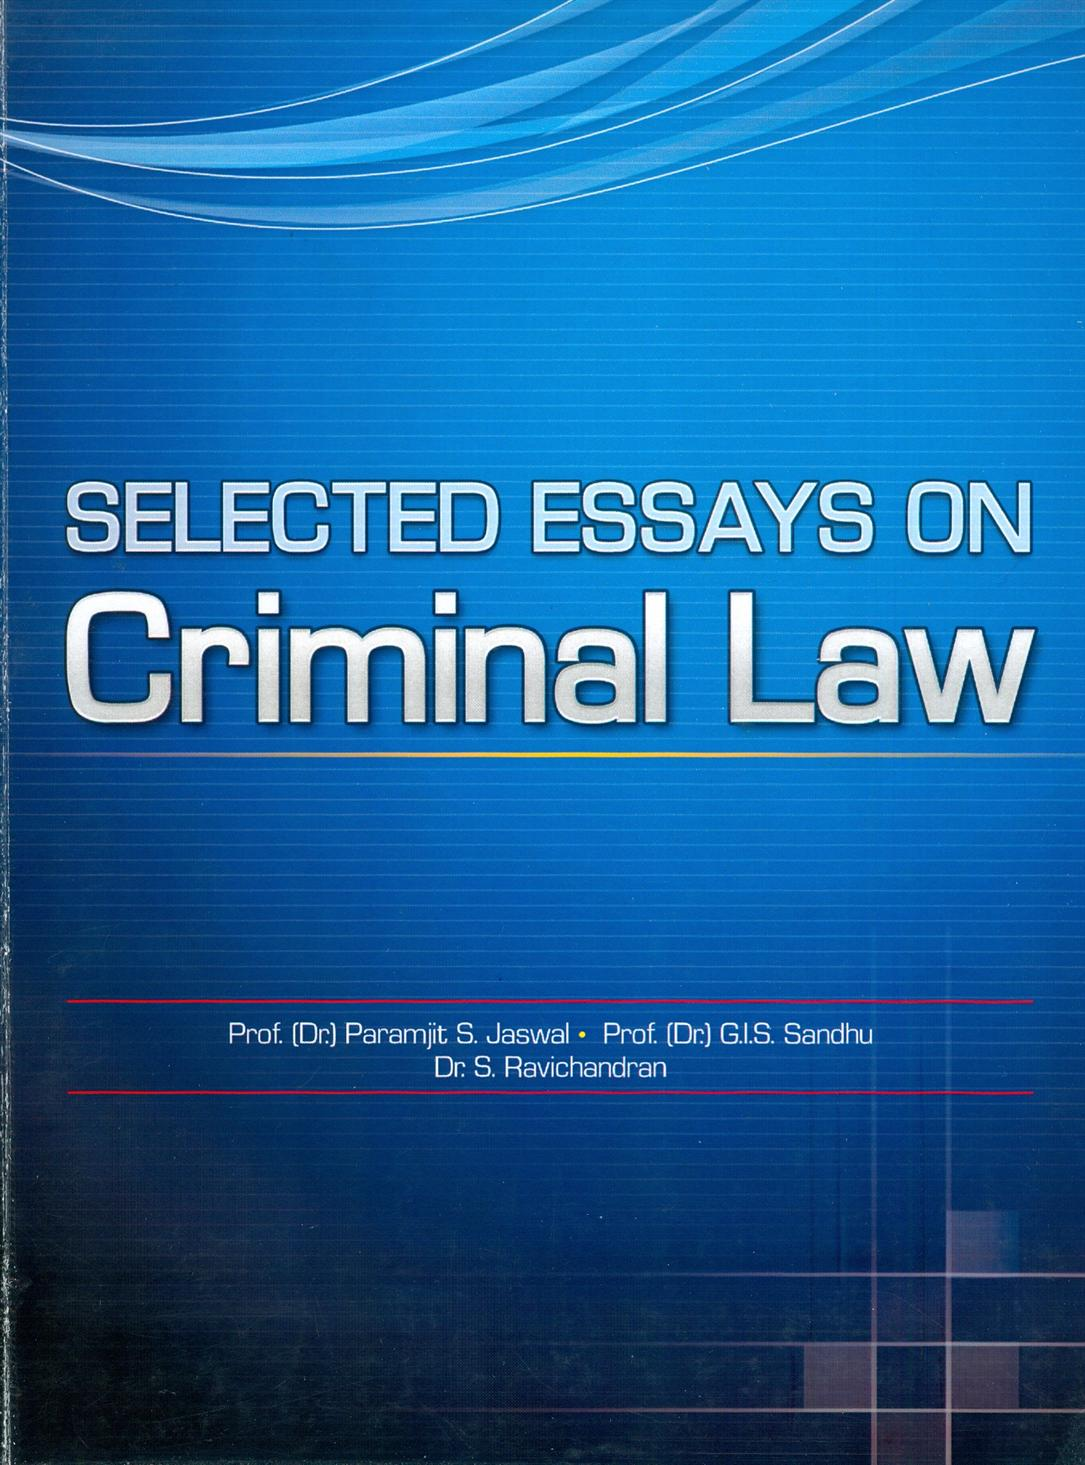 Critical analysis cause and effect essay